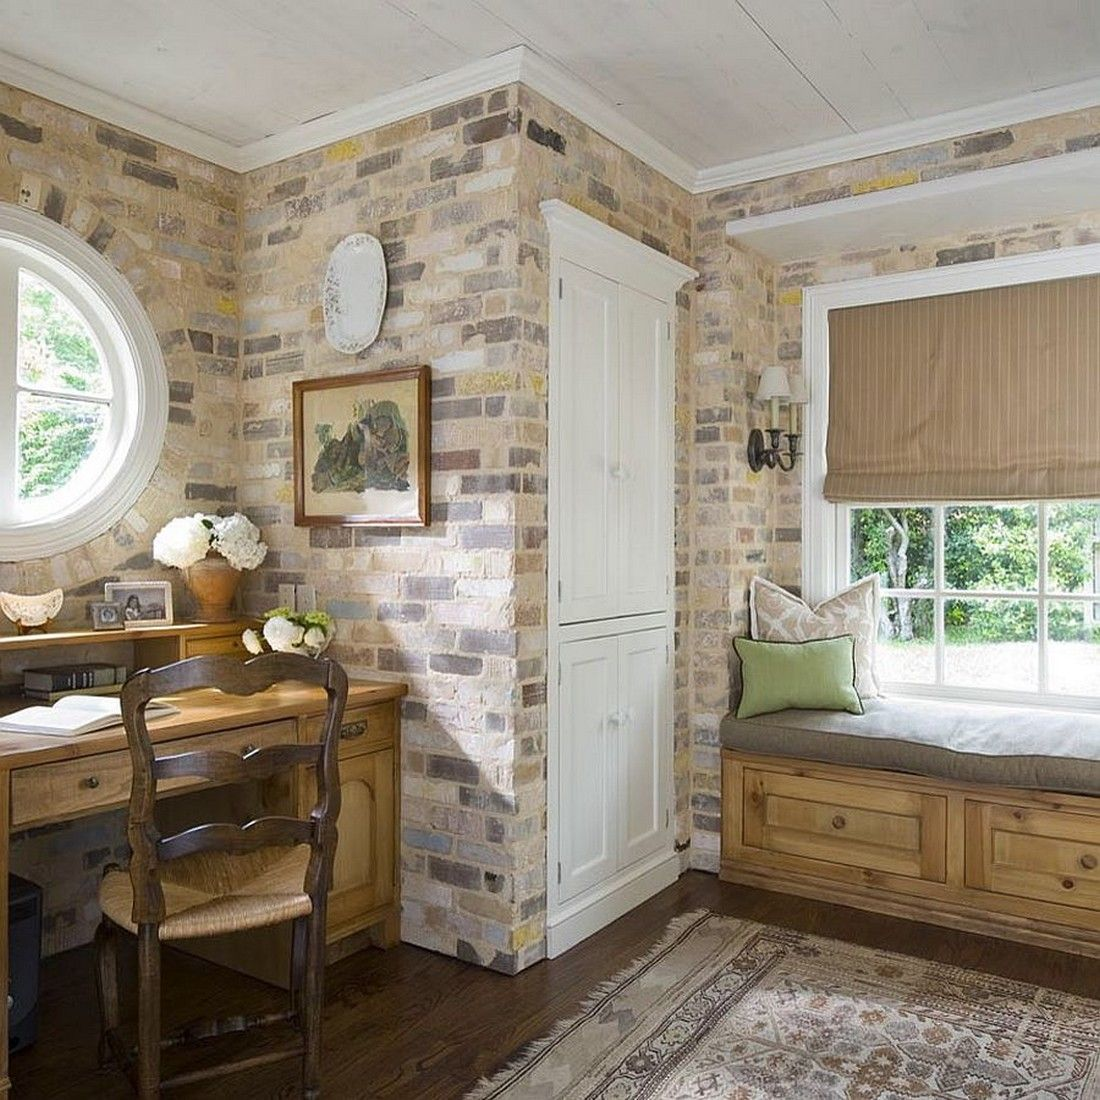 Window nook decorating ideas  when tired of working or studying relax yourself at window nook